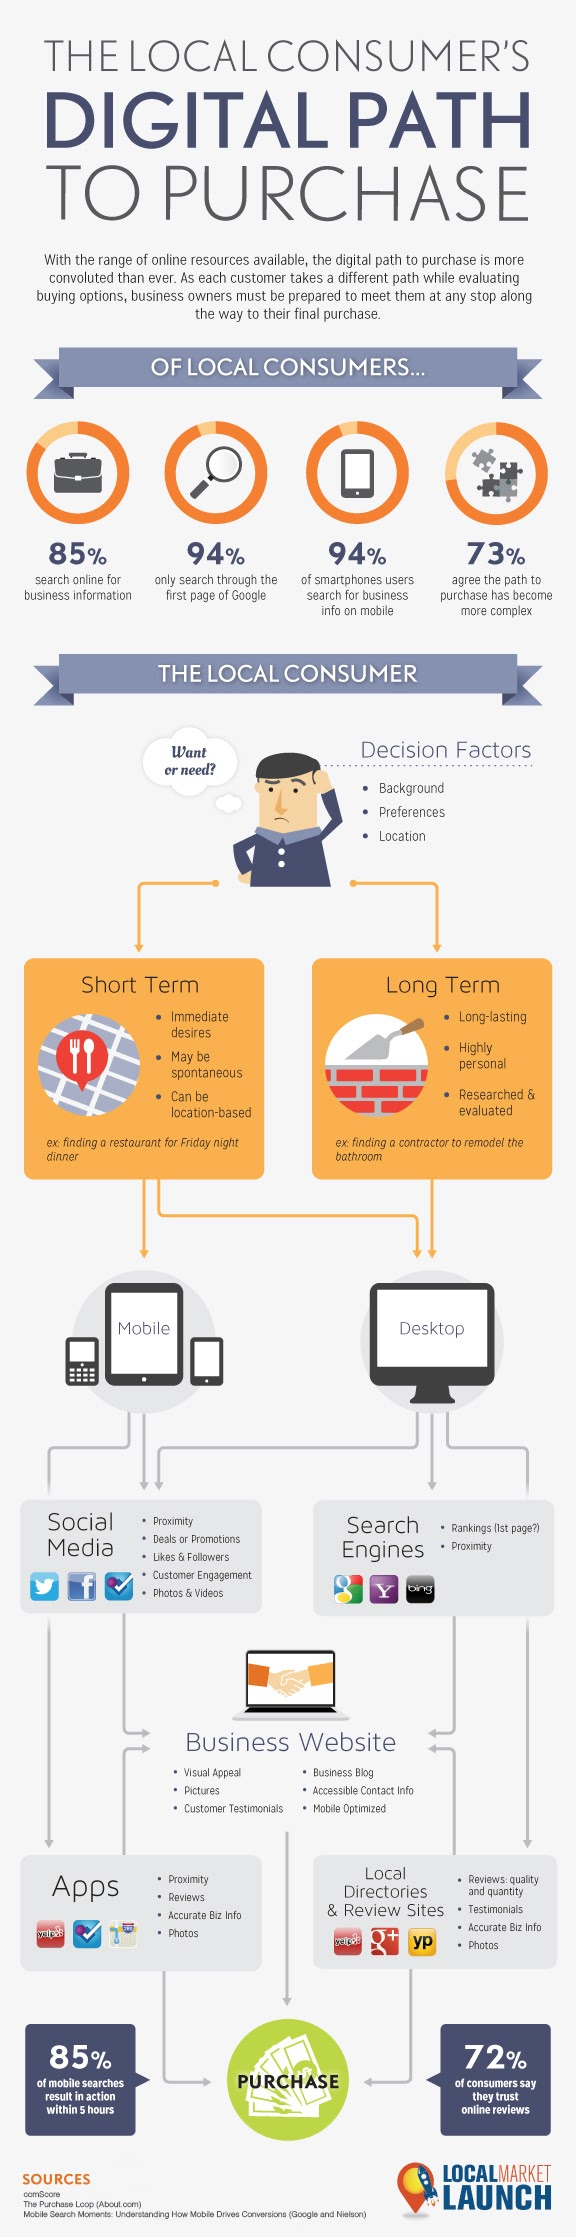 The Local Consumer's Digital Path To Purchase [Infographic]